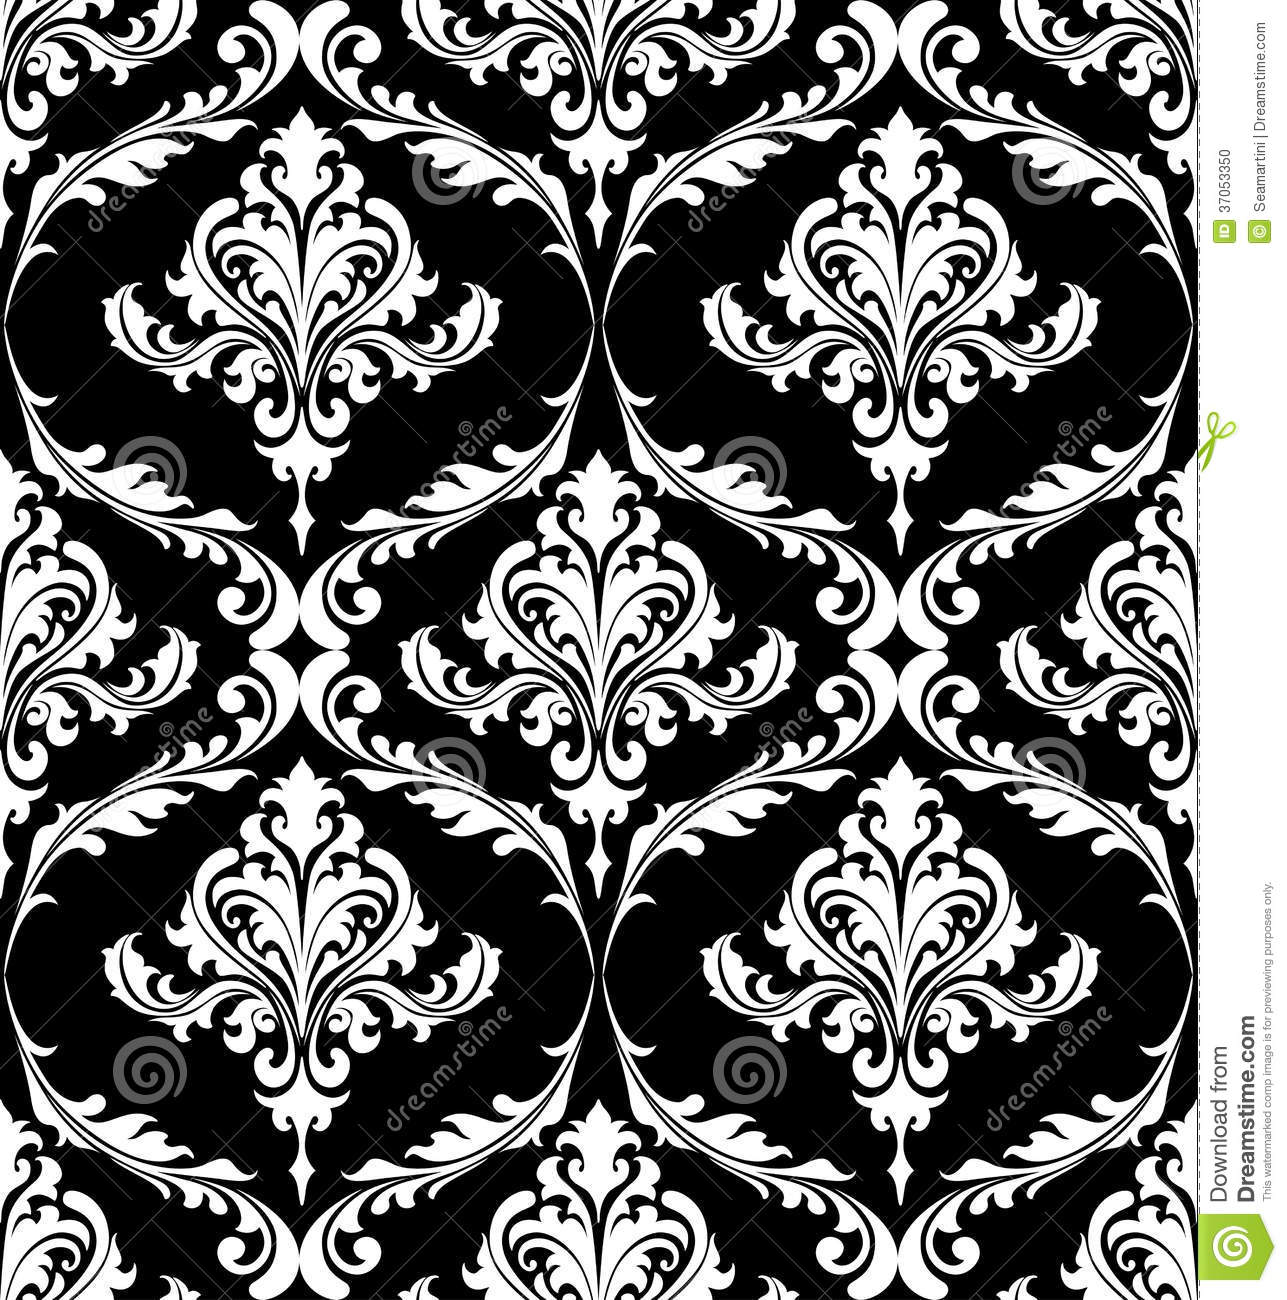 Cool Black And White Posters Black And White Vintage Damask Pattern Stock Vector